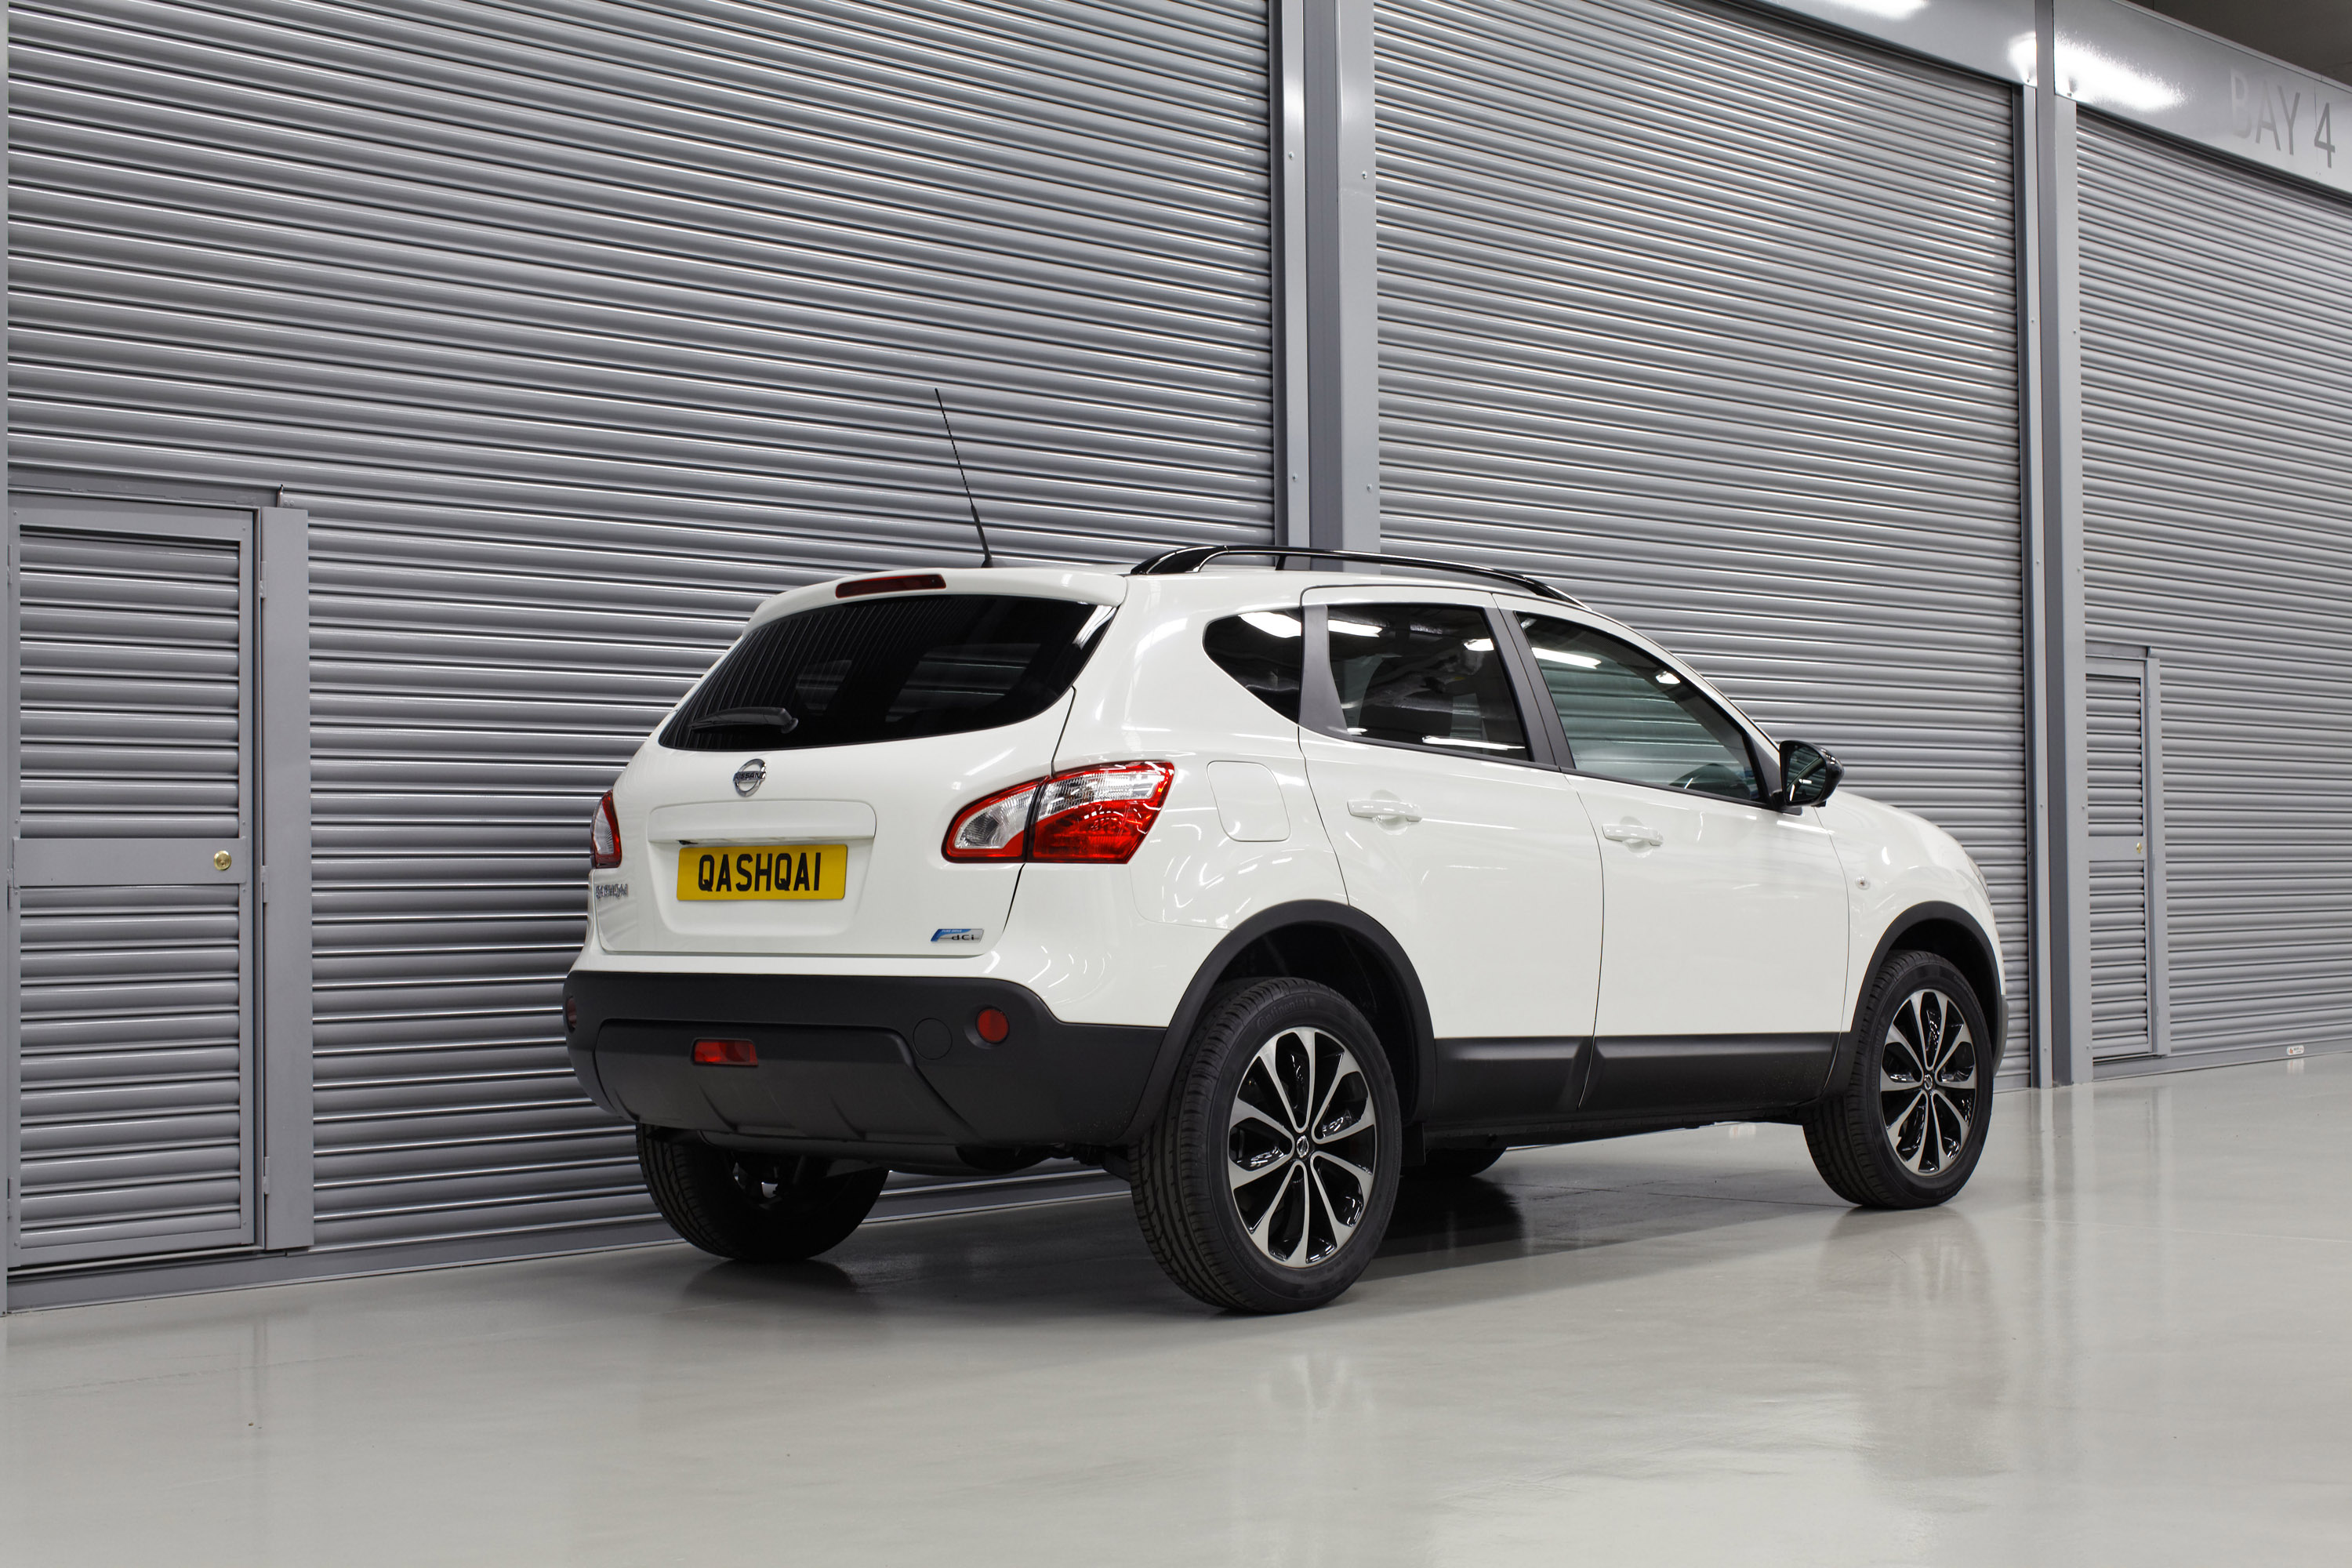 Cost Of Panoramic Glass Roof On Qashqai